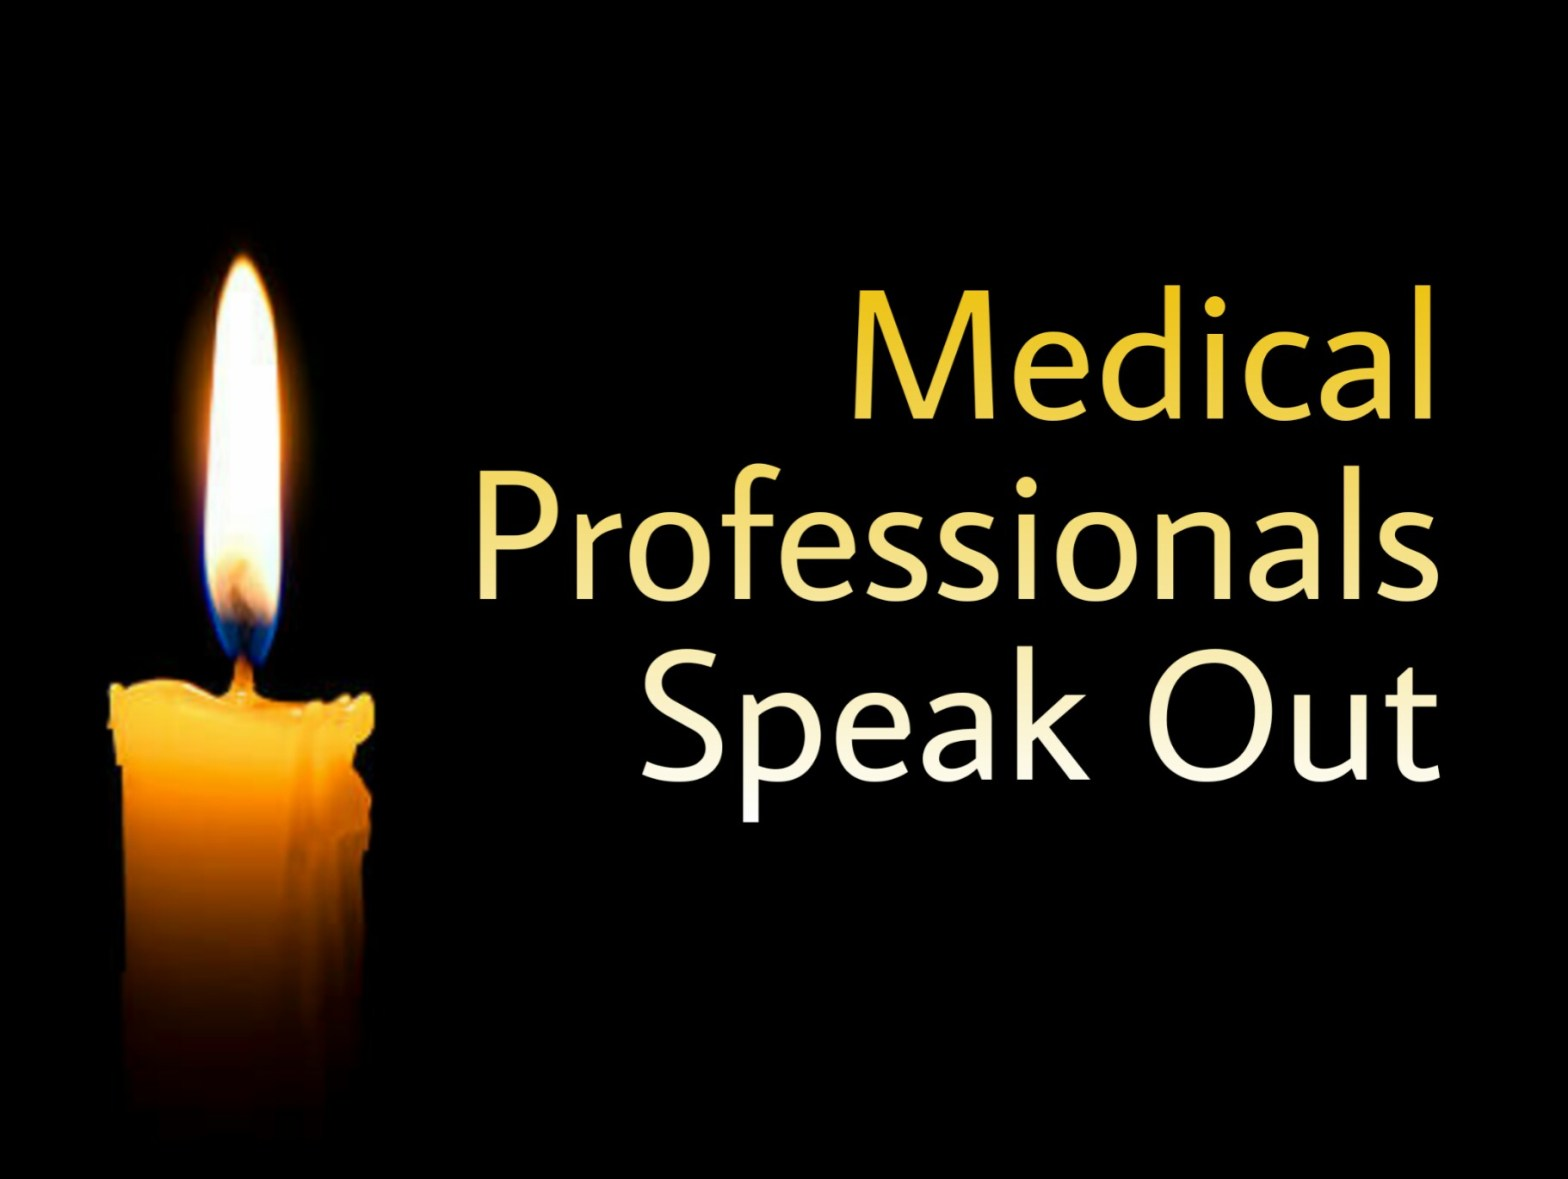 infographic medical professionals speak out with lit candle in the dark